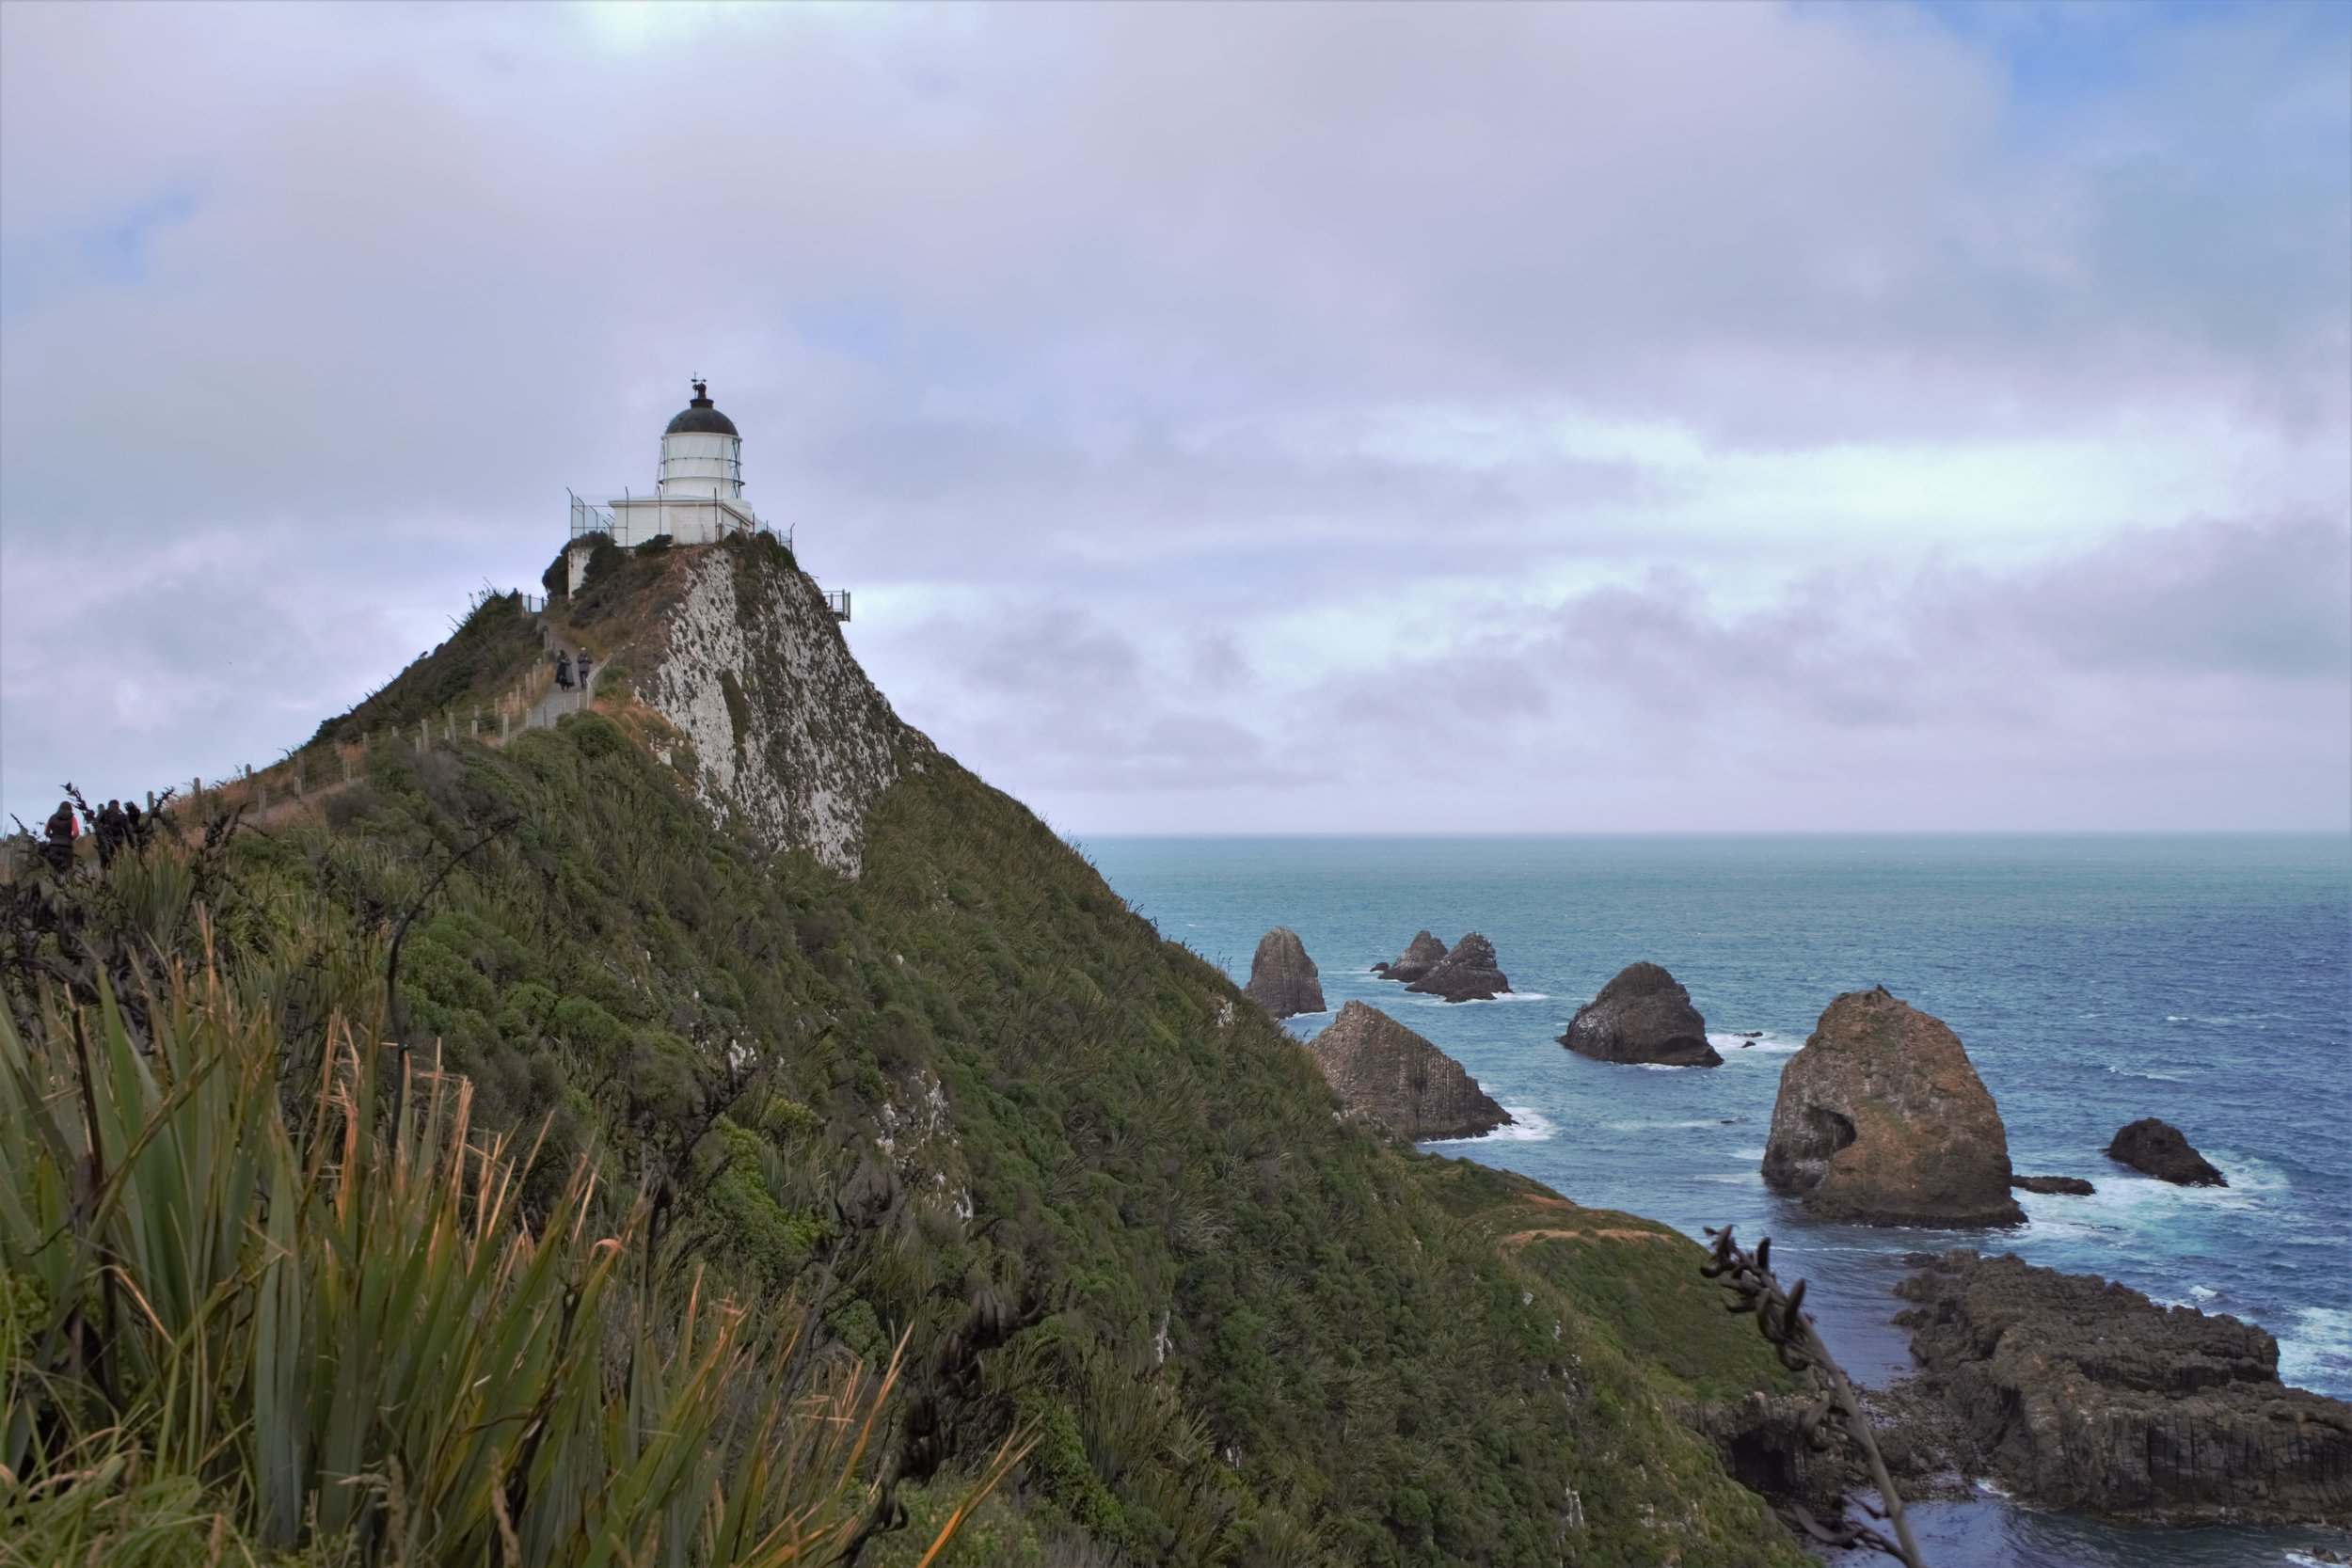 Nugget Point Lighthouse is one of the best things to see during your 3 day Catlins itinerary.